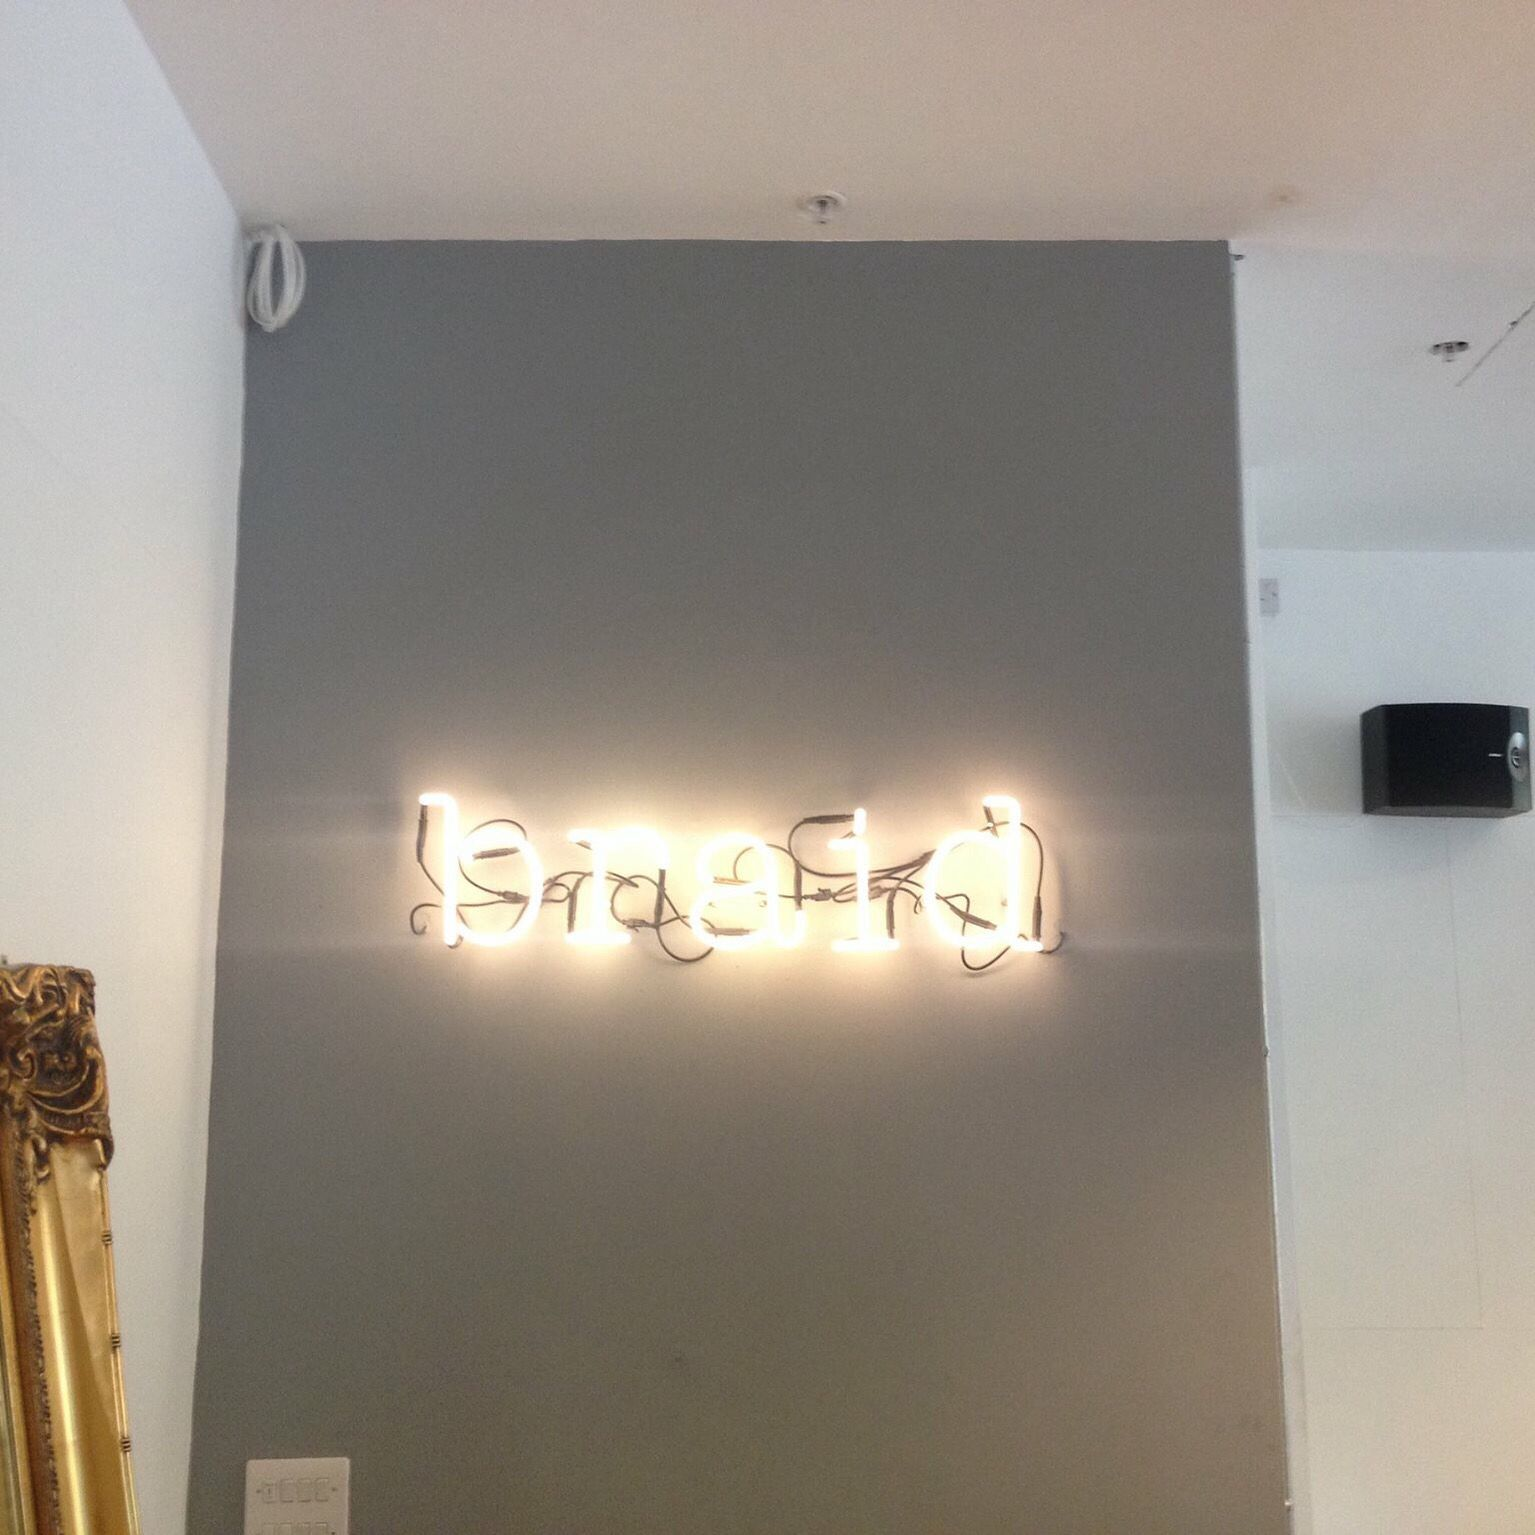 Braid Barbers have used our NEON font by Seletti to spell it out for you at their new Milton Keynes store! #letterlights  #lightdesign #neonlights